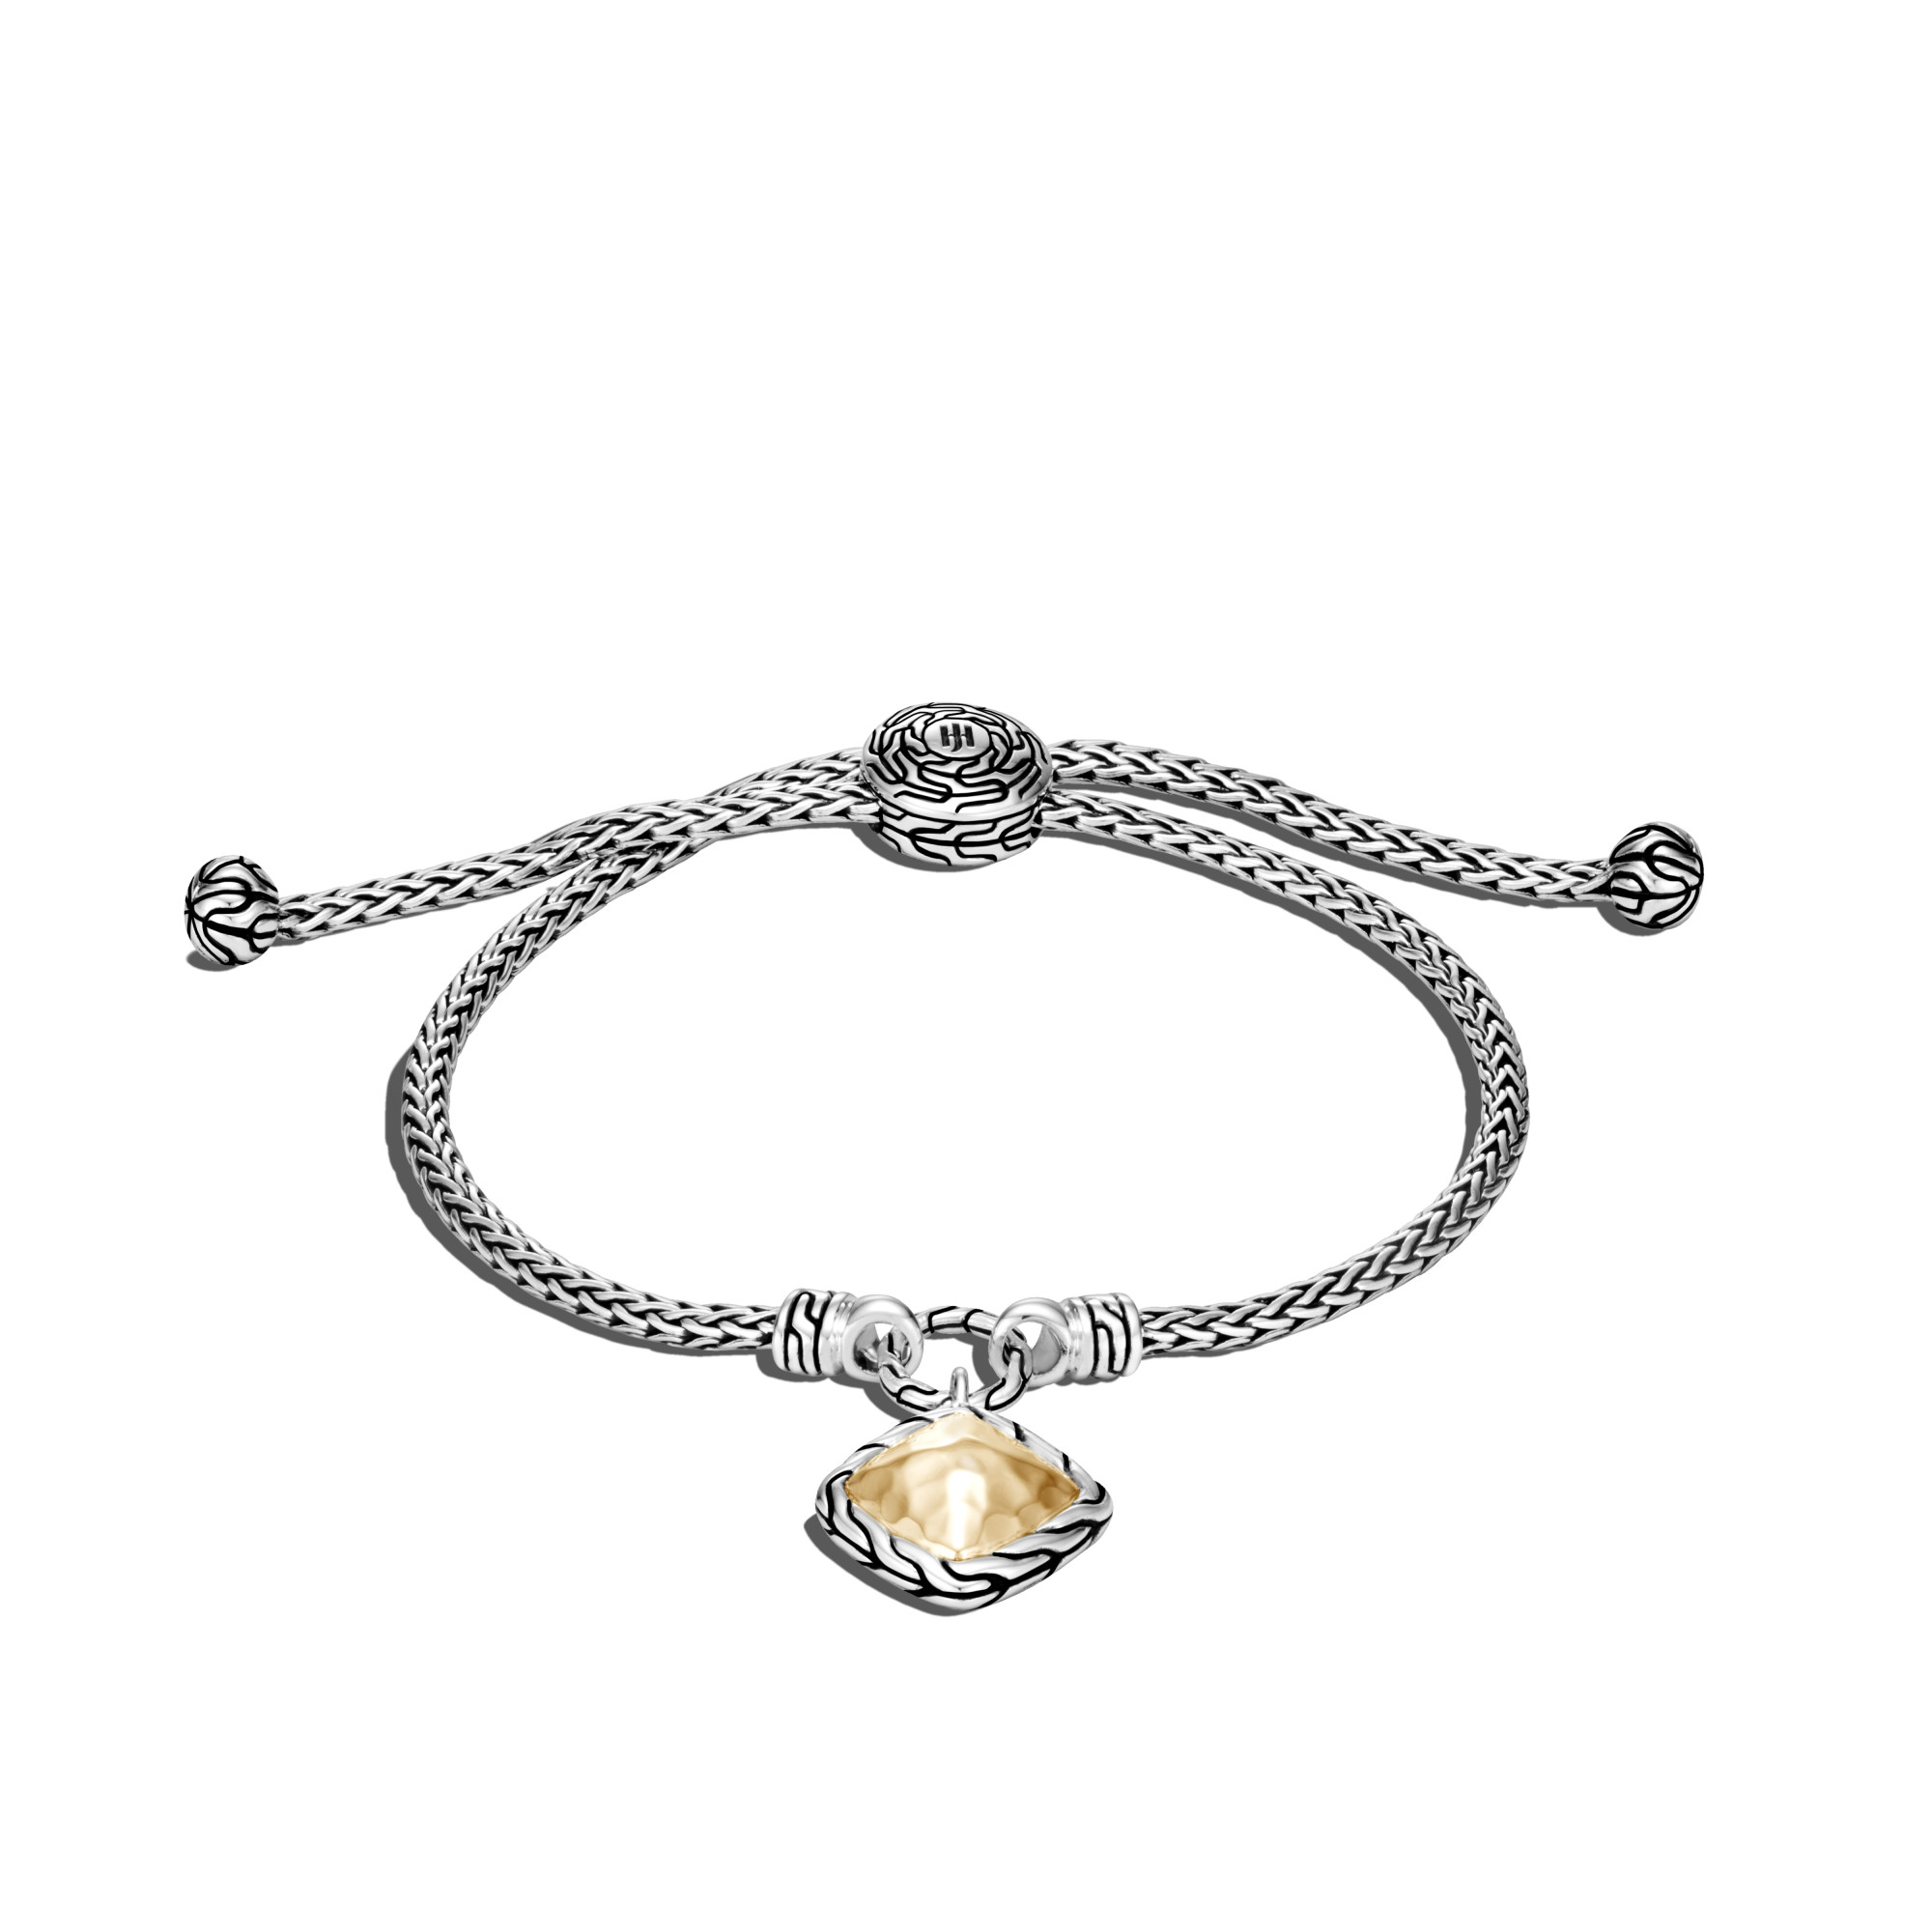 John Hardy CLASSIC CHAIN PULL THROUGH BRACELET, STERLING SILVER, HAMMERED 18K GOLD